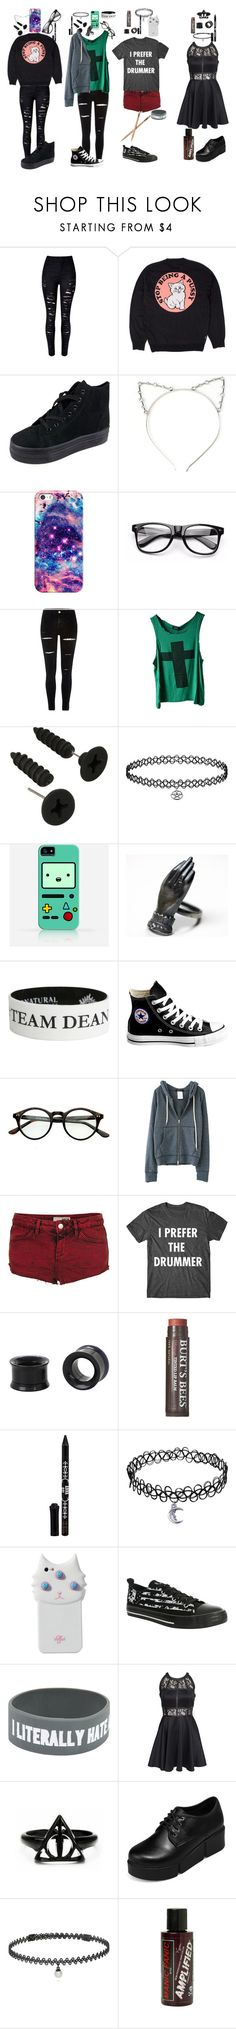 """""""Whats your favorite(s)?"""" by hold-on-til-may ❤ liked on Polyvore featuring RIPNDIP, Glamorous, Casetify, Samsung, Converse, Topshop, Burt's Bees, Anna Sui, Valfré and AX Paris"""